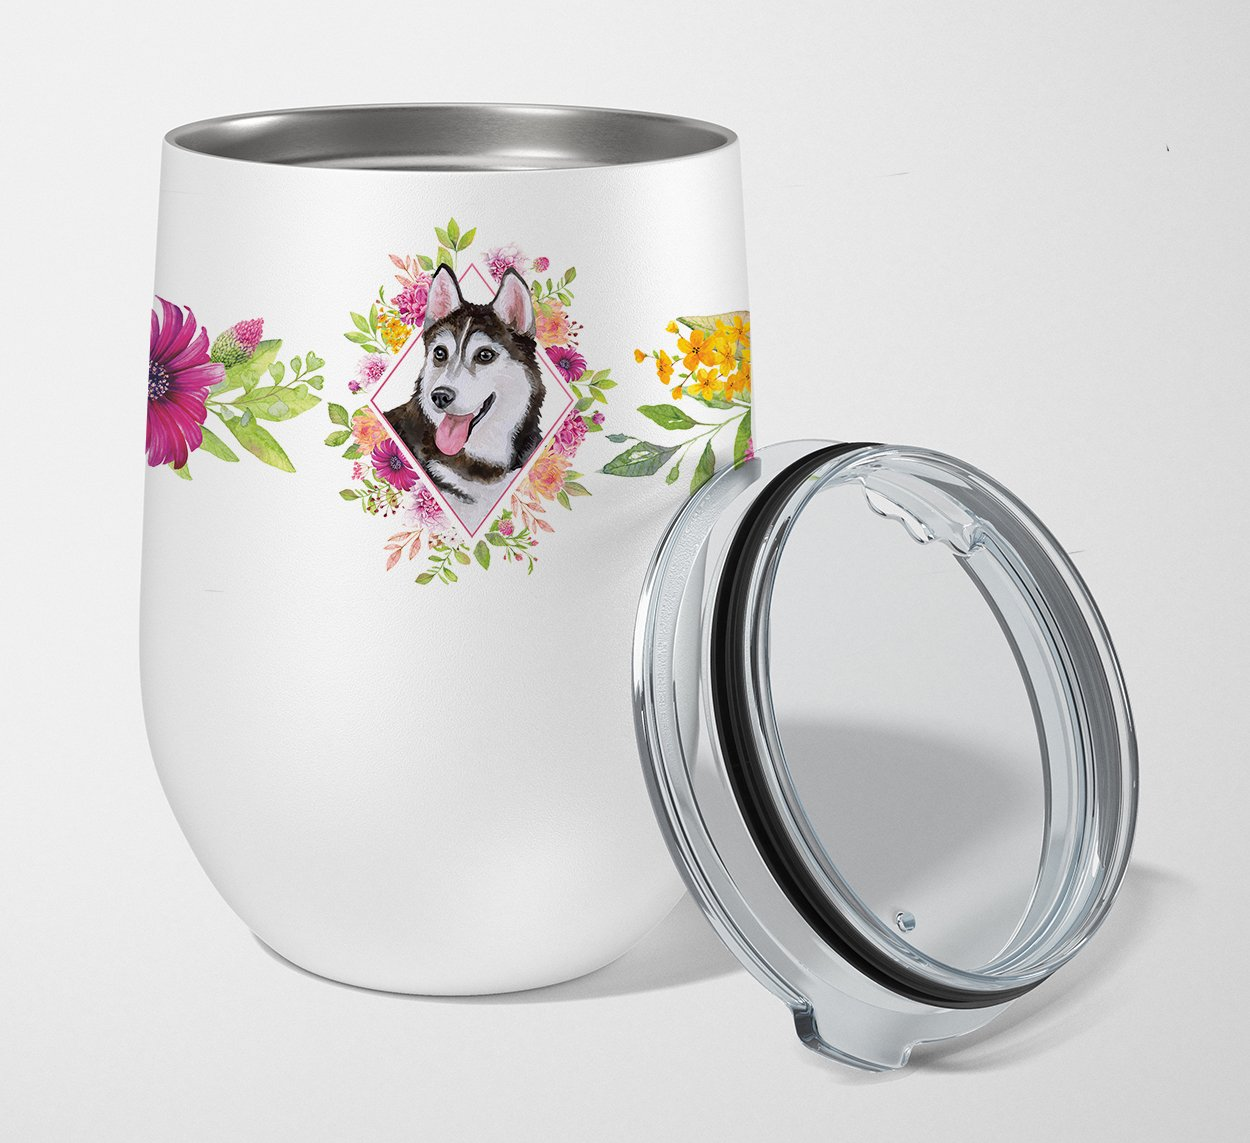 Siberian Husky #1 Pink Flowers Stainless Steel 12 oz Stemless Wine Glass CK4151TBL12 by Caroline's Treasures